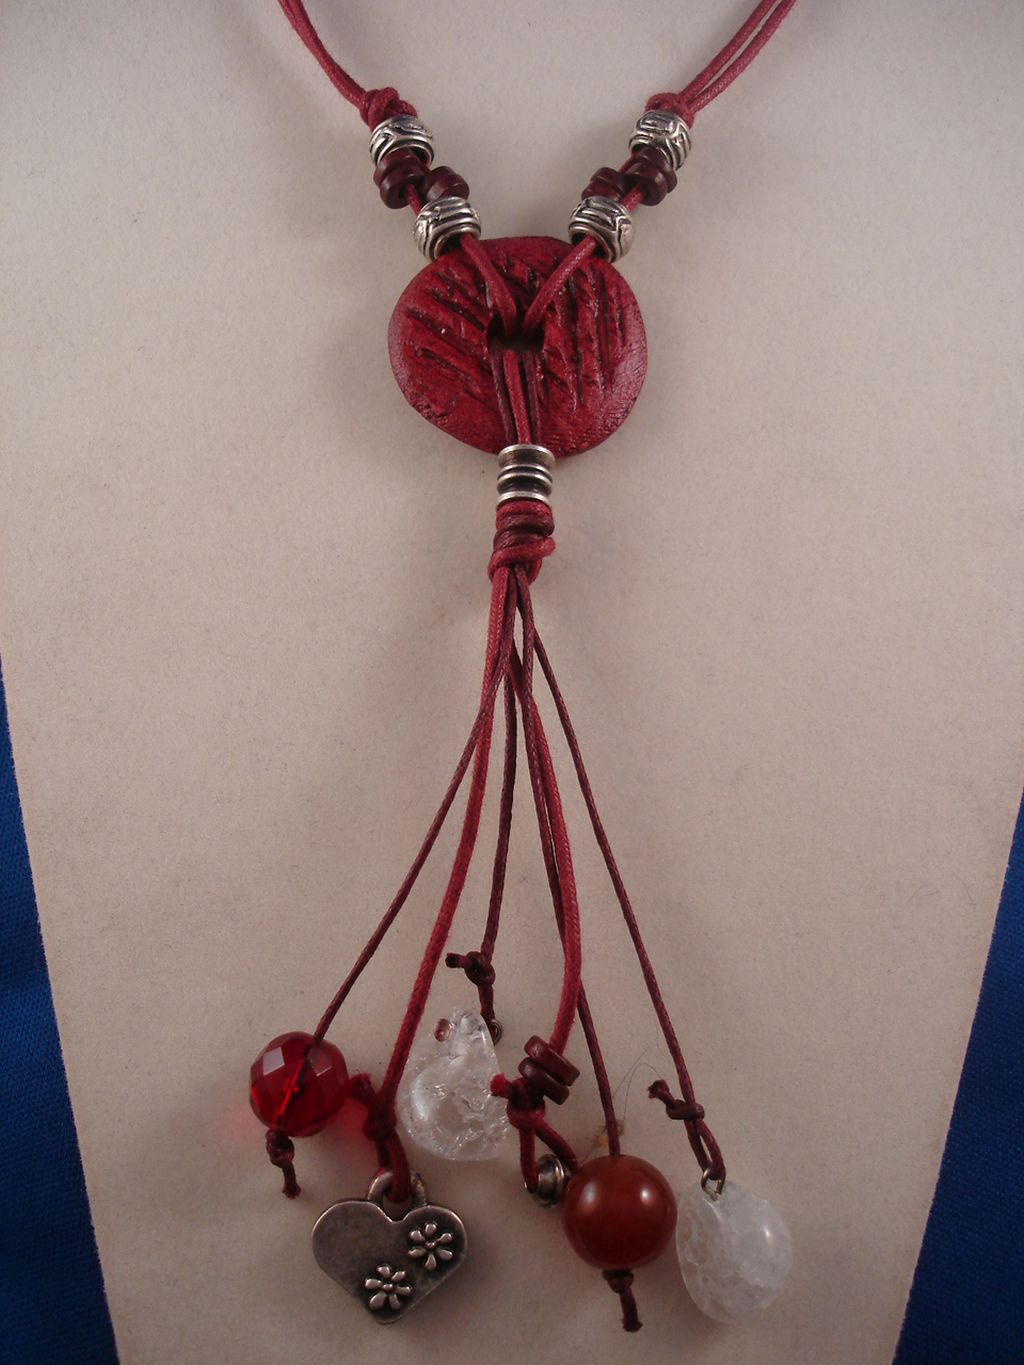 "Red Necklace, 1 1/4"" Ceramic Pendant, Heart Charm, Genuine Stones, Cotton Cord, Metal Beads, European Fashion Jewelry"